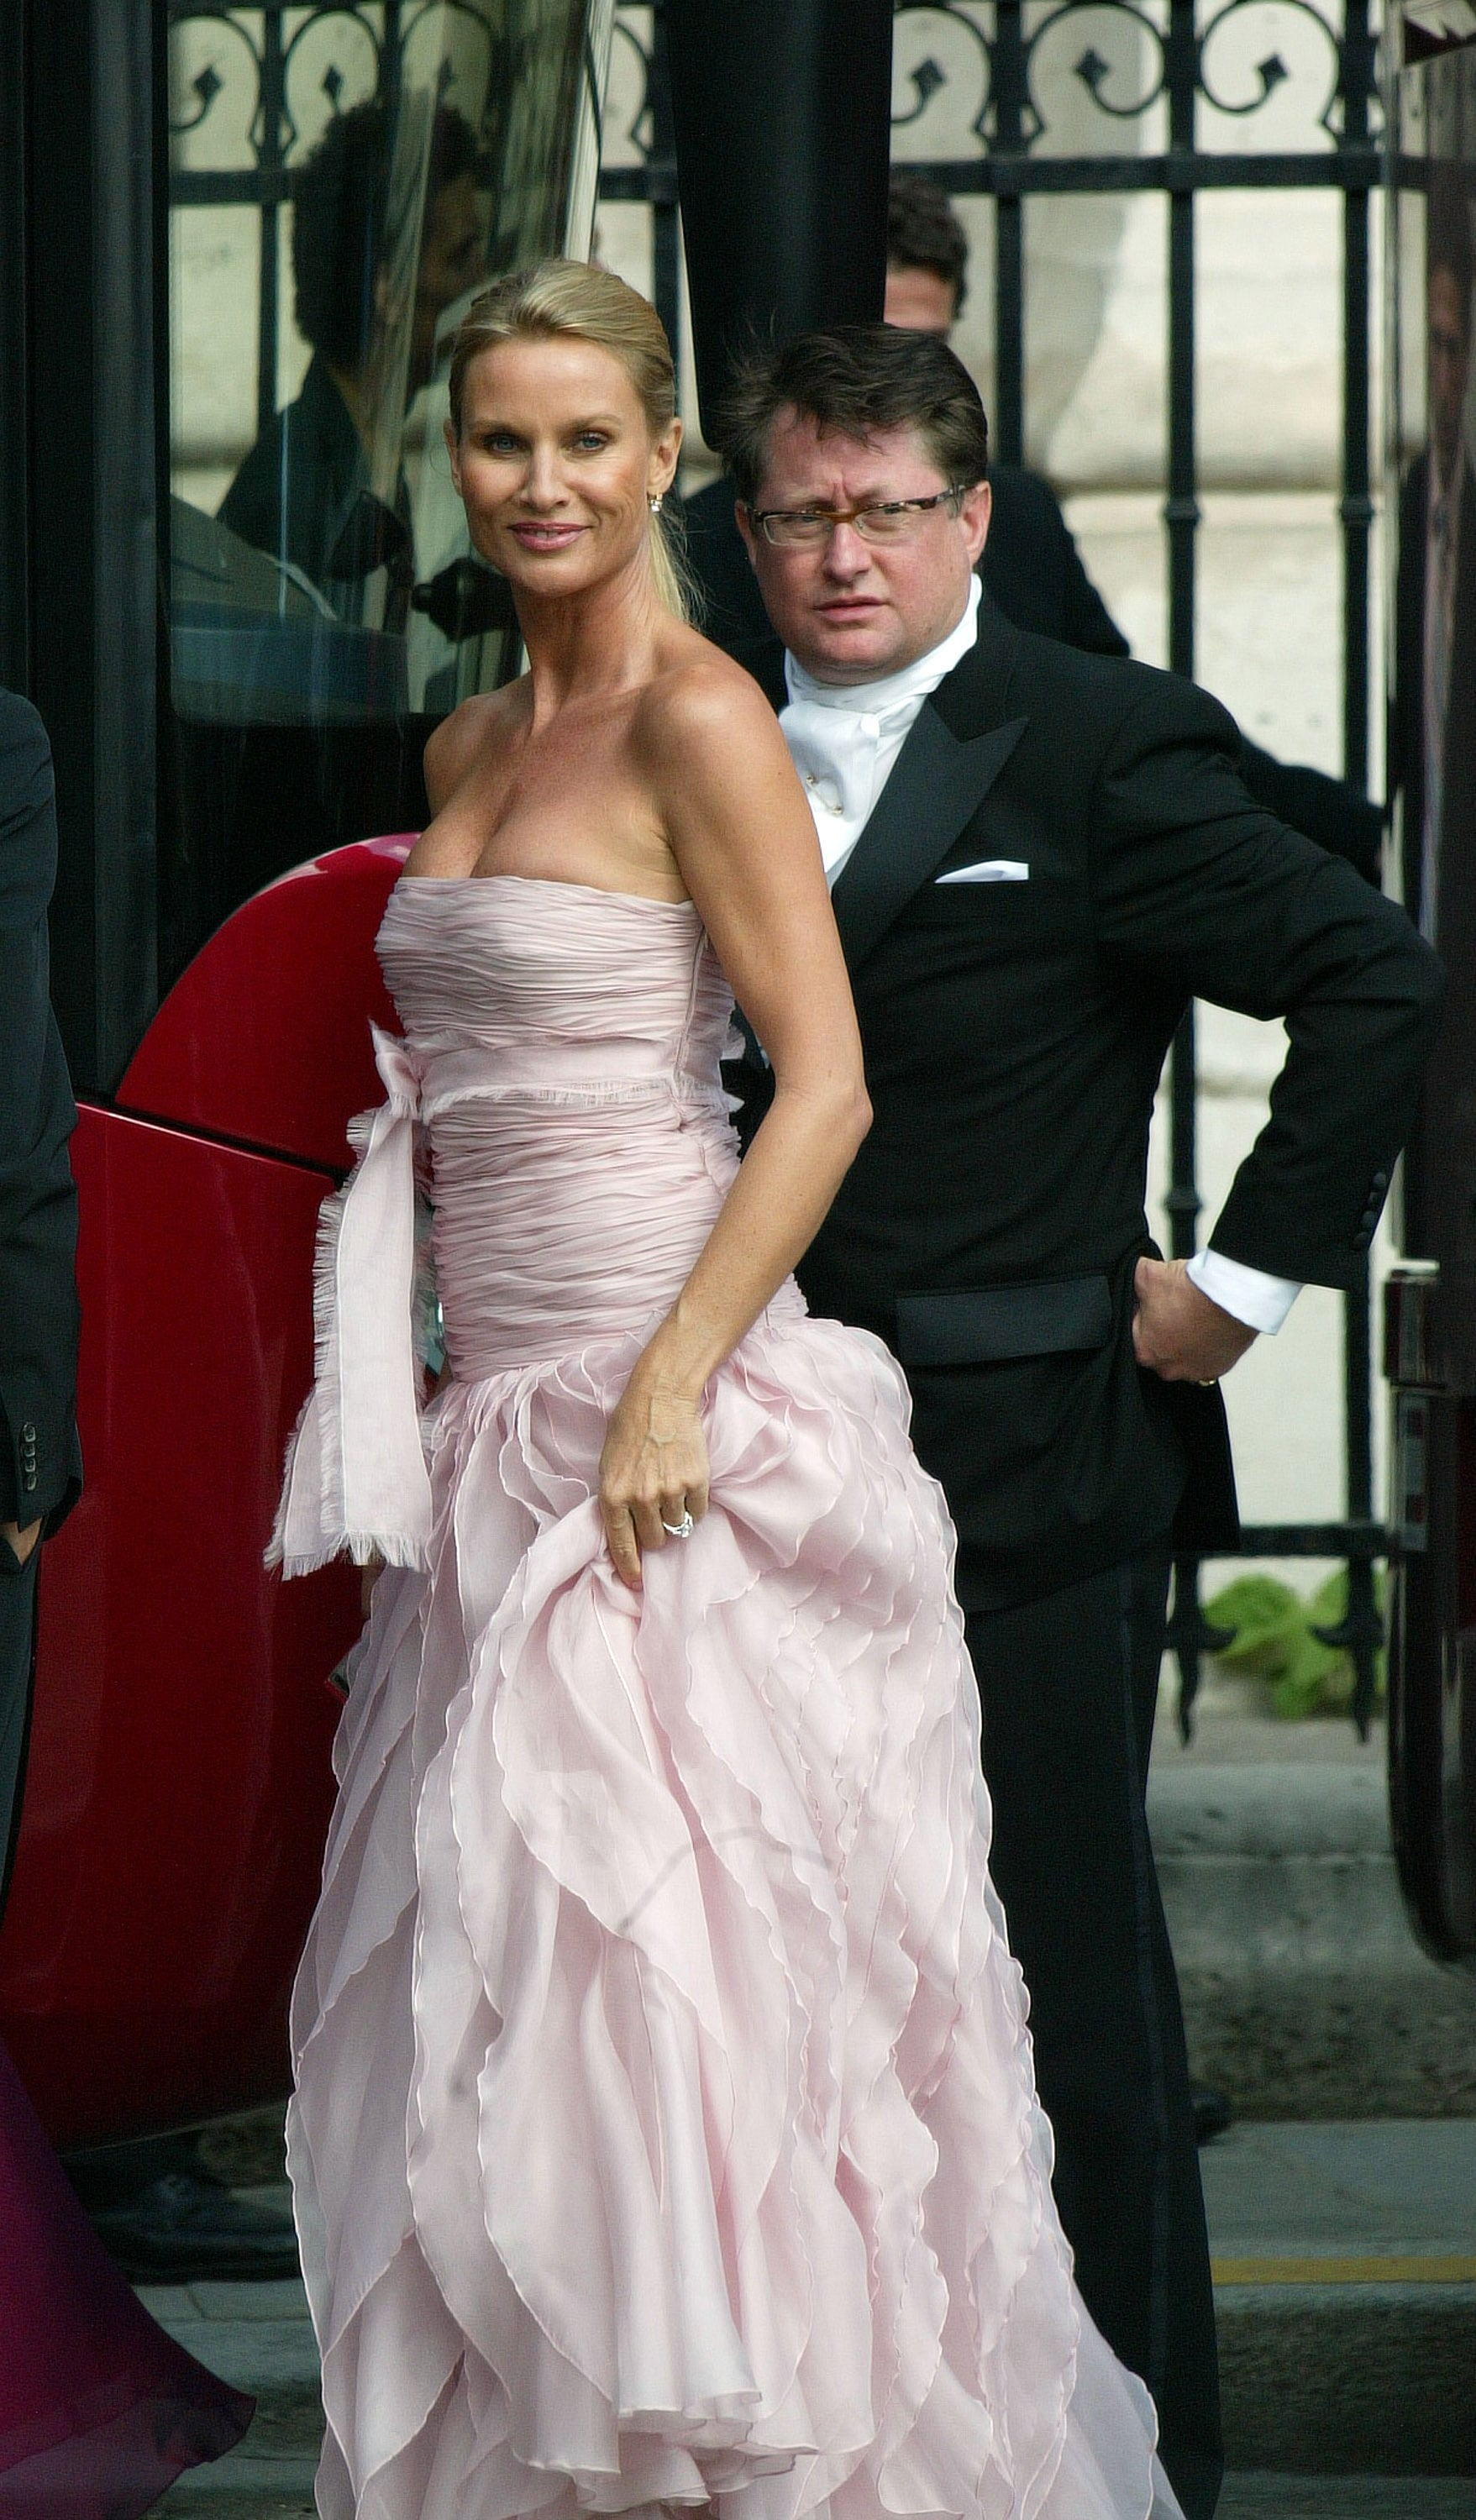 Nicolette Sheridan attended her Desperate Housewives castmate Eva Longoria's Paris wedding to Tony Parker in July 2007.